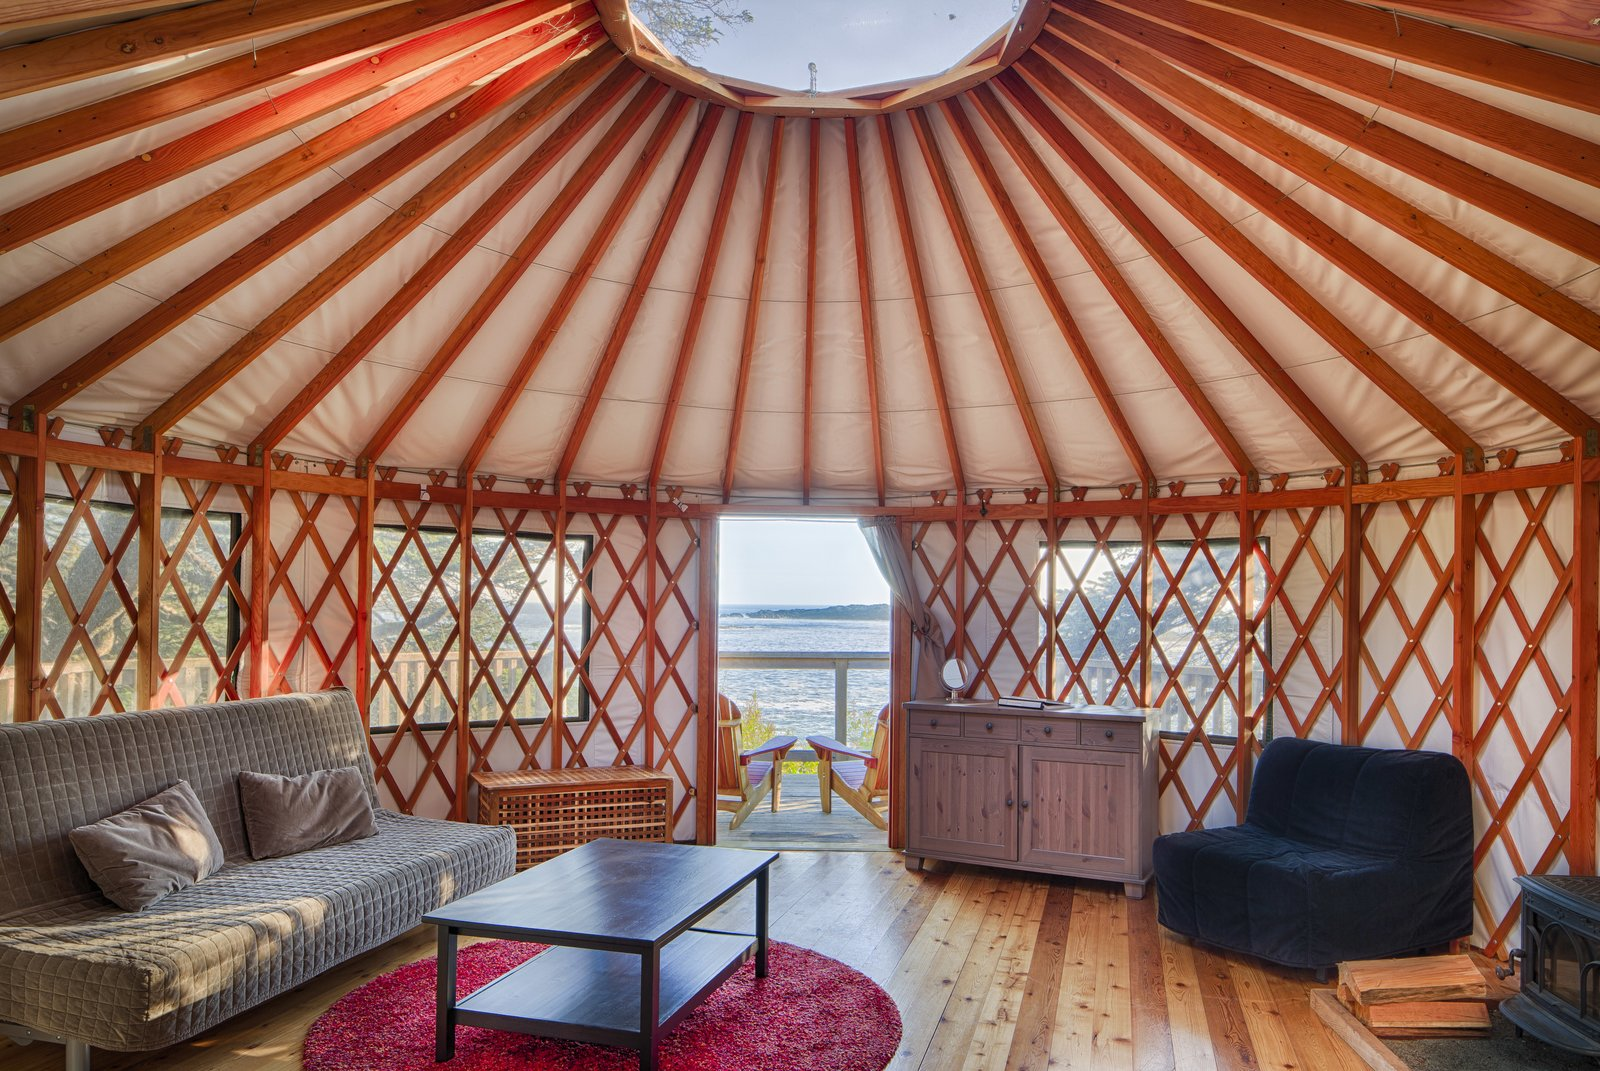 Photo 7 of 10 in 9 Yurt Vacation Rentals For the Modern Alternative Camper